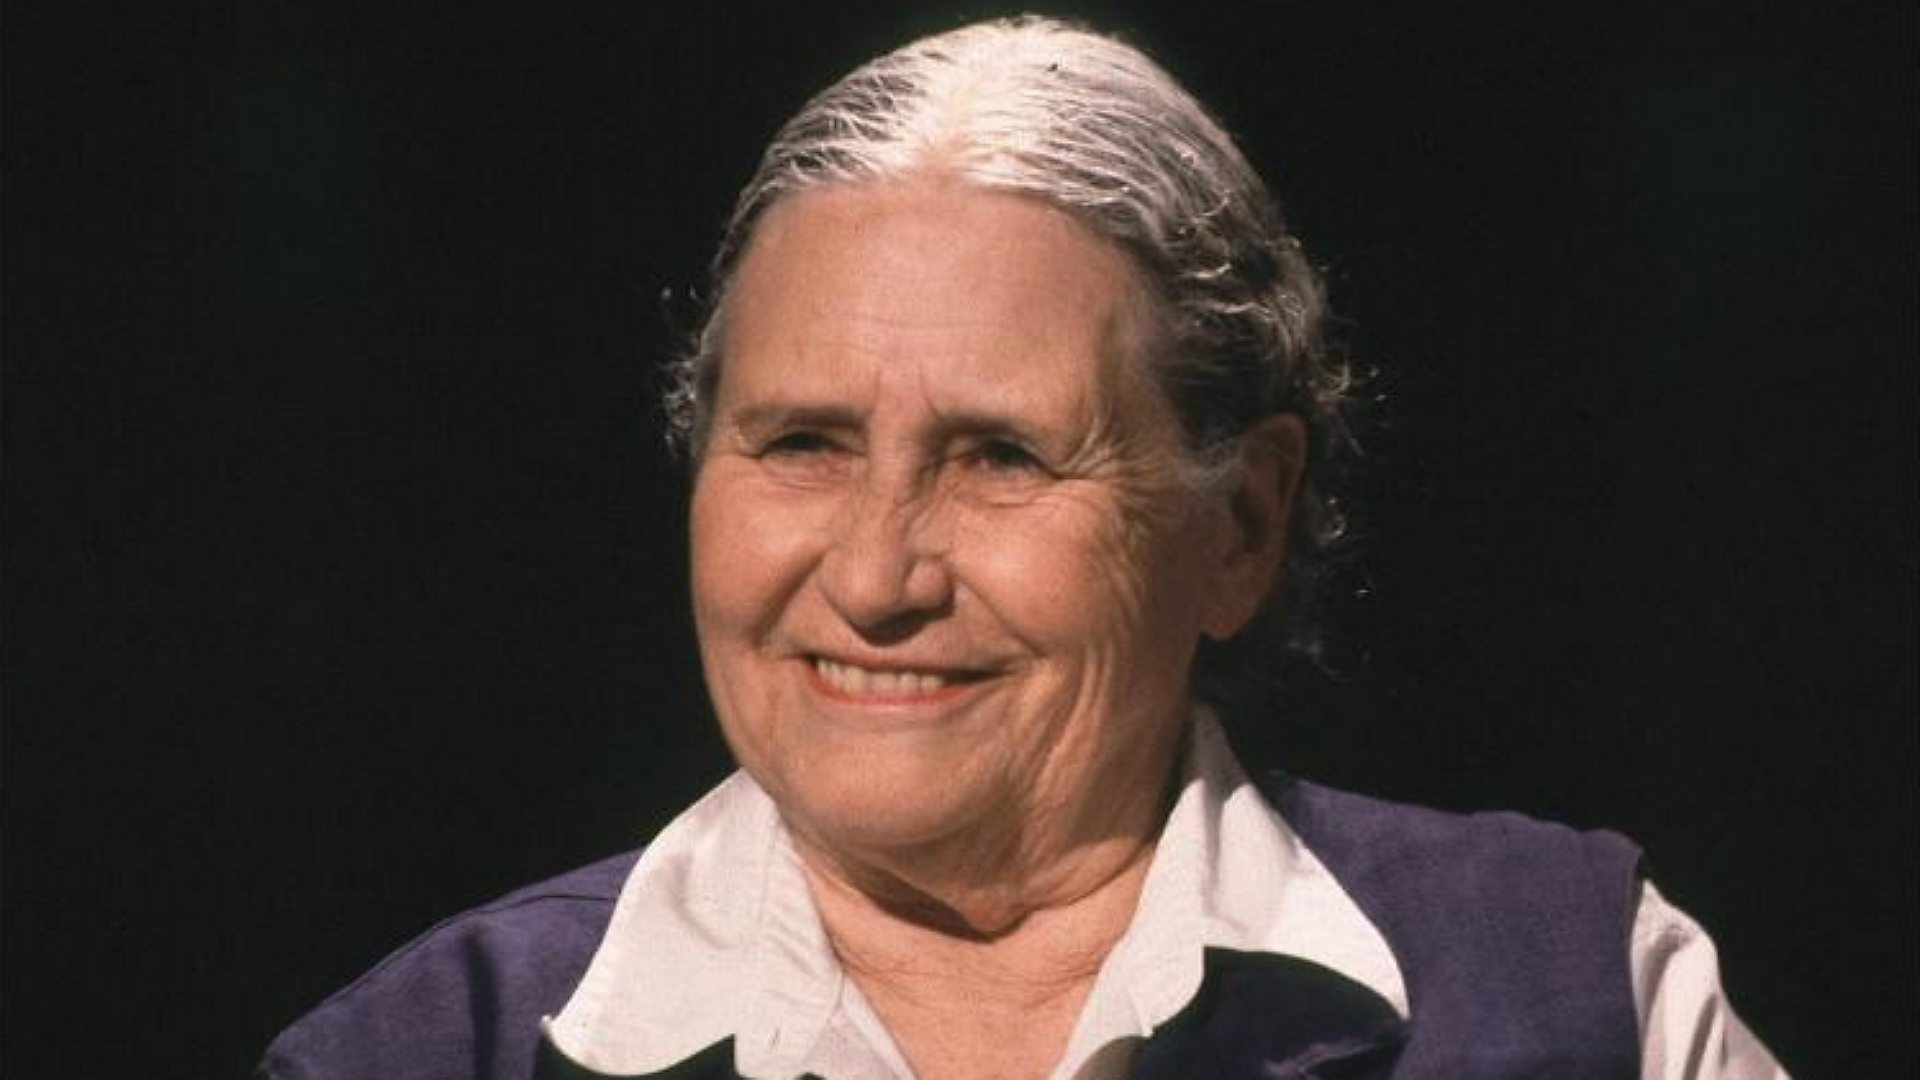 essays on through the tunnel by doris lessing Doris lessing through the tunnel plot overview and analysis written by an  experienced literary critic full study guide for this title currently under  development.